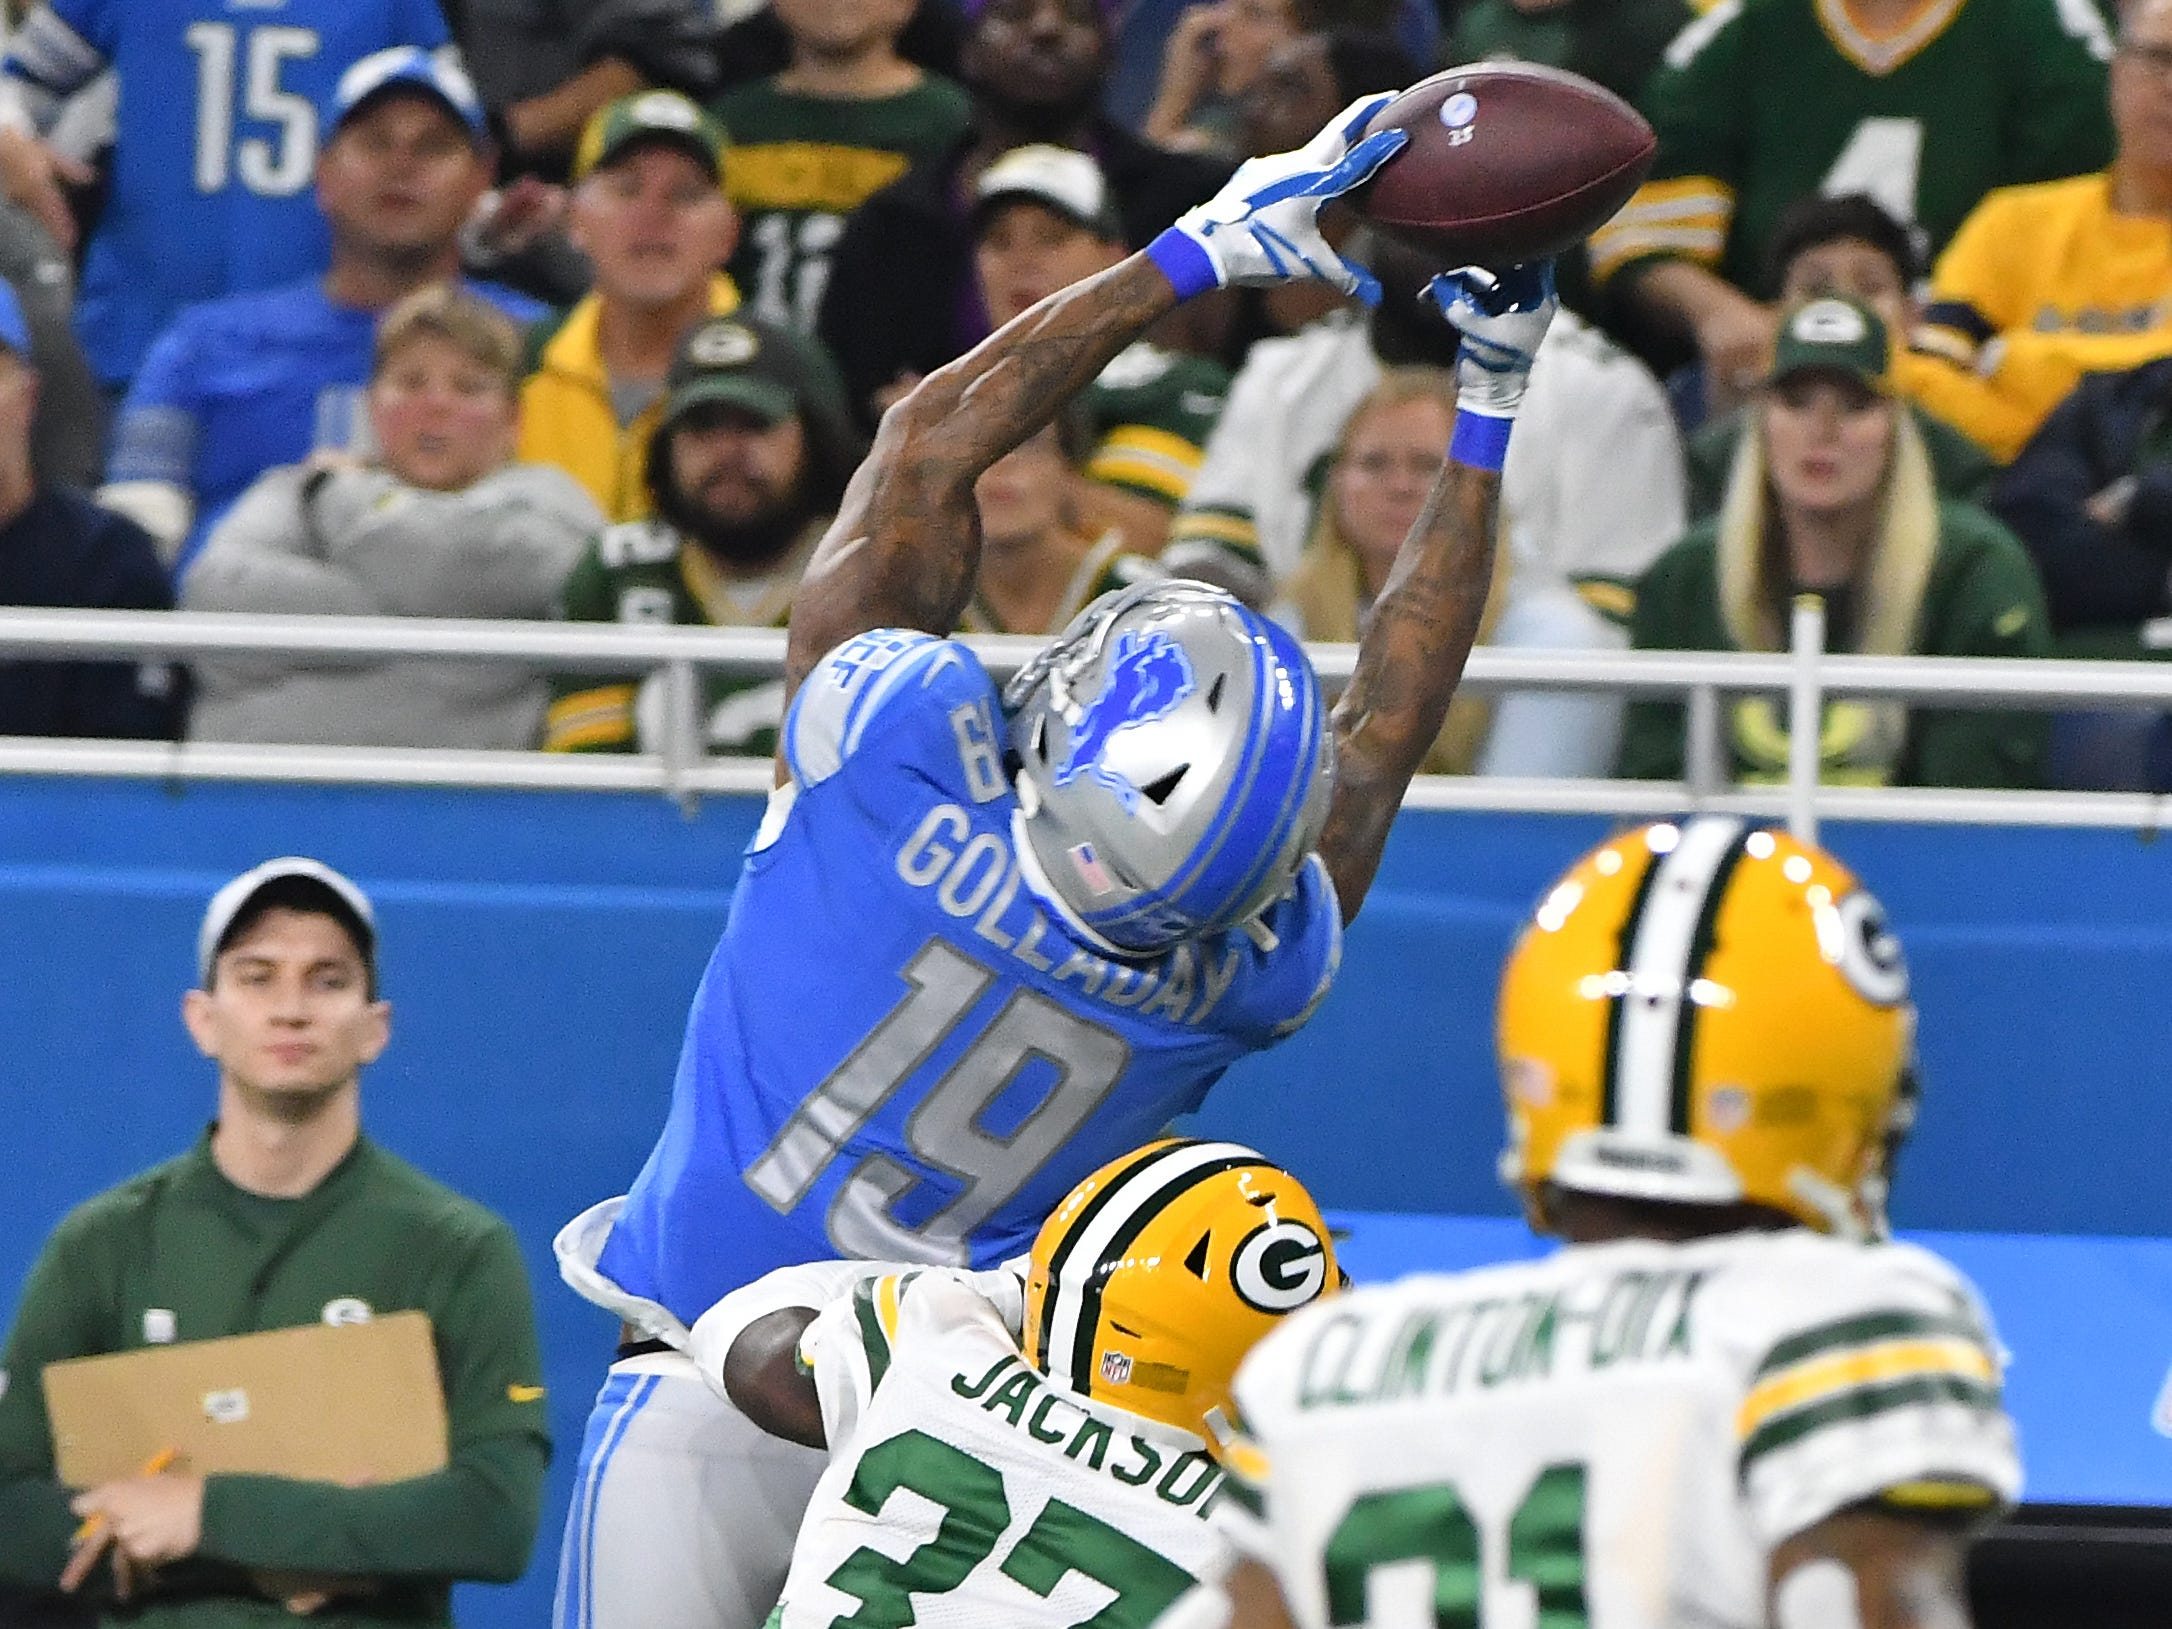 Lions' Kenny Golladay grabs a reception and dances down the sideline, knocking away defenders for a long first down in the first quarter.